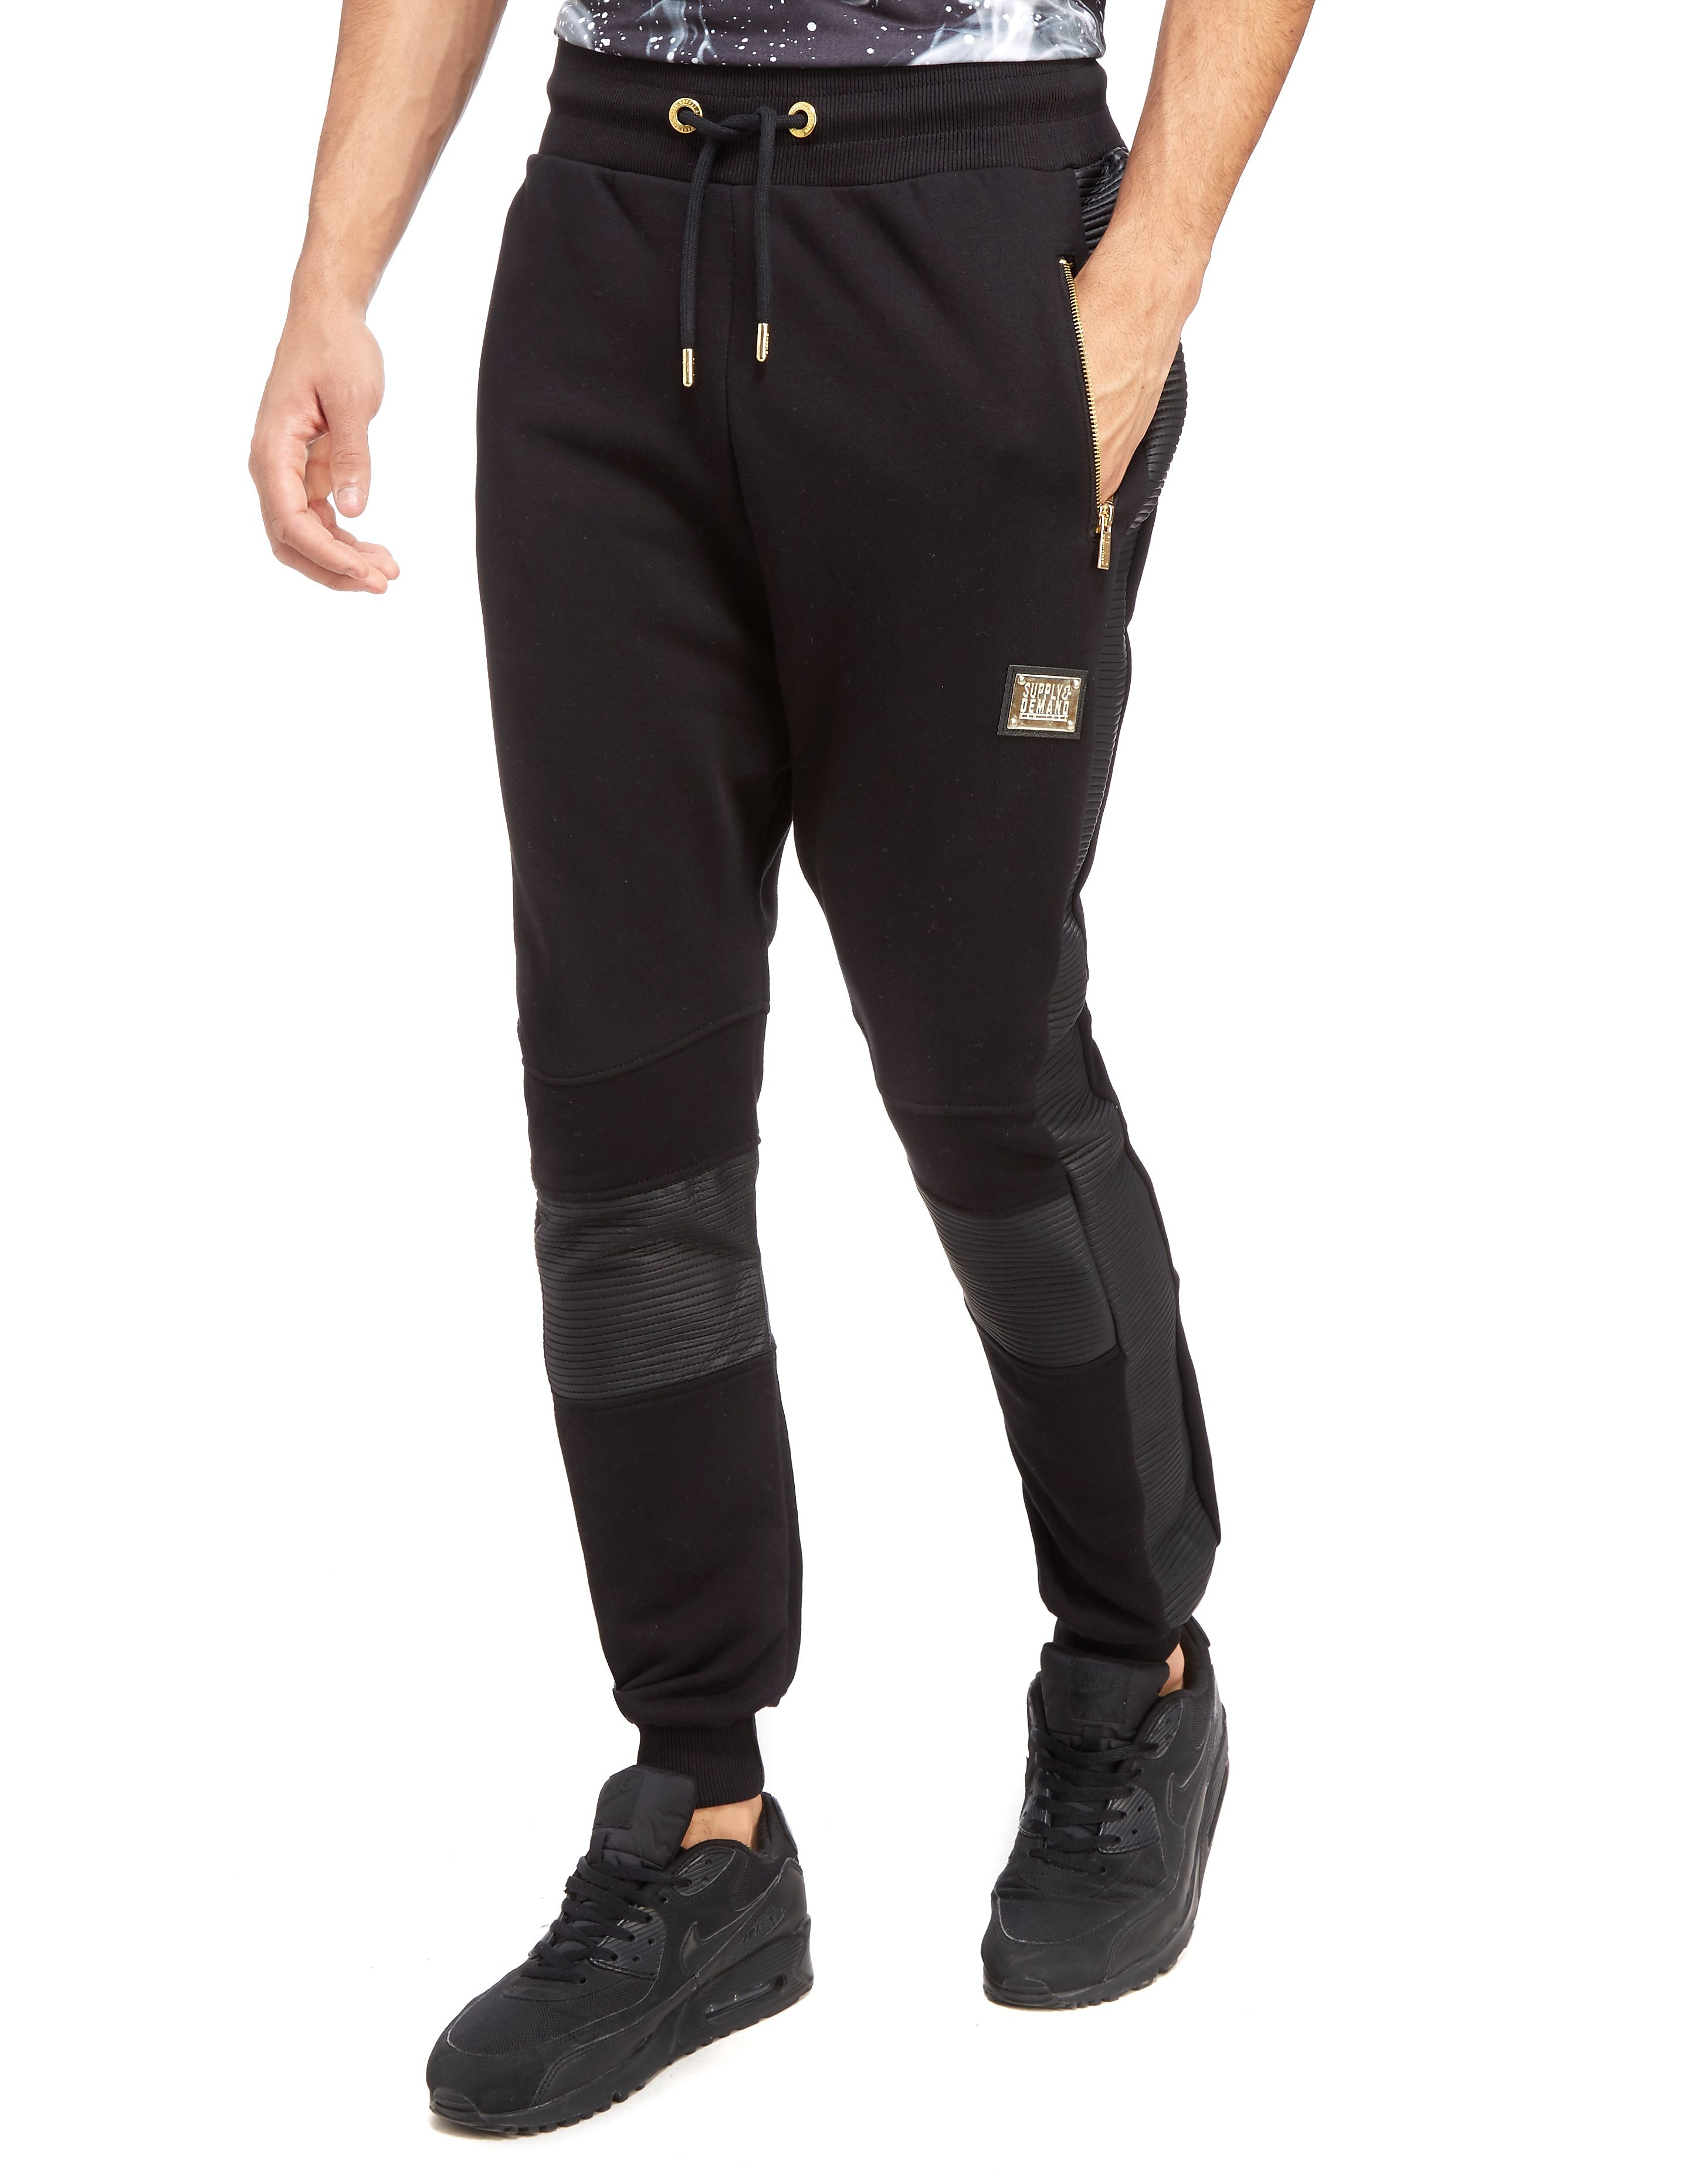 Supply & Demand Galaxy Jogging Pants